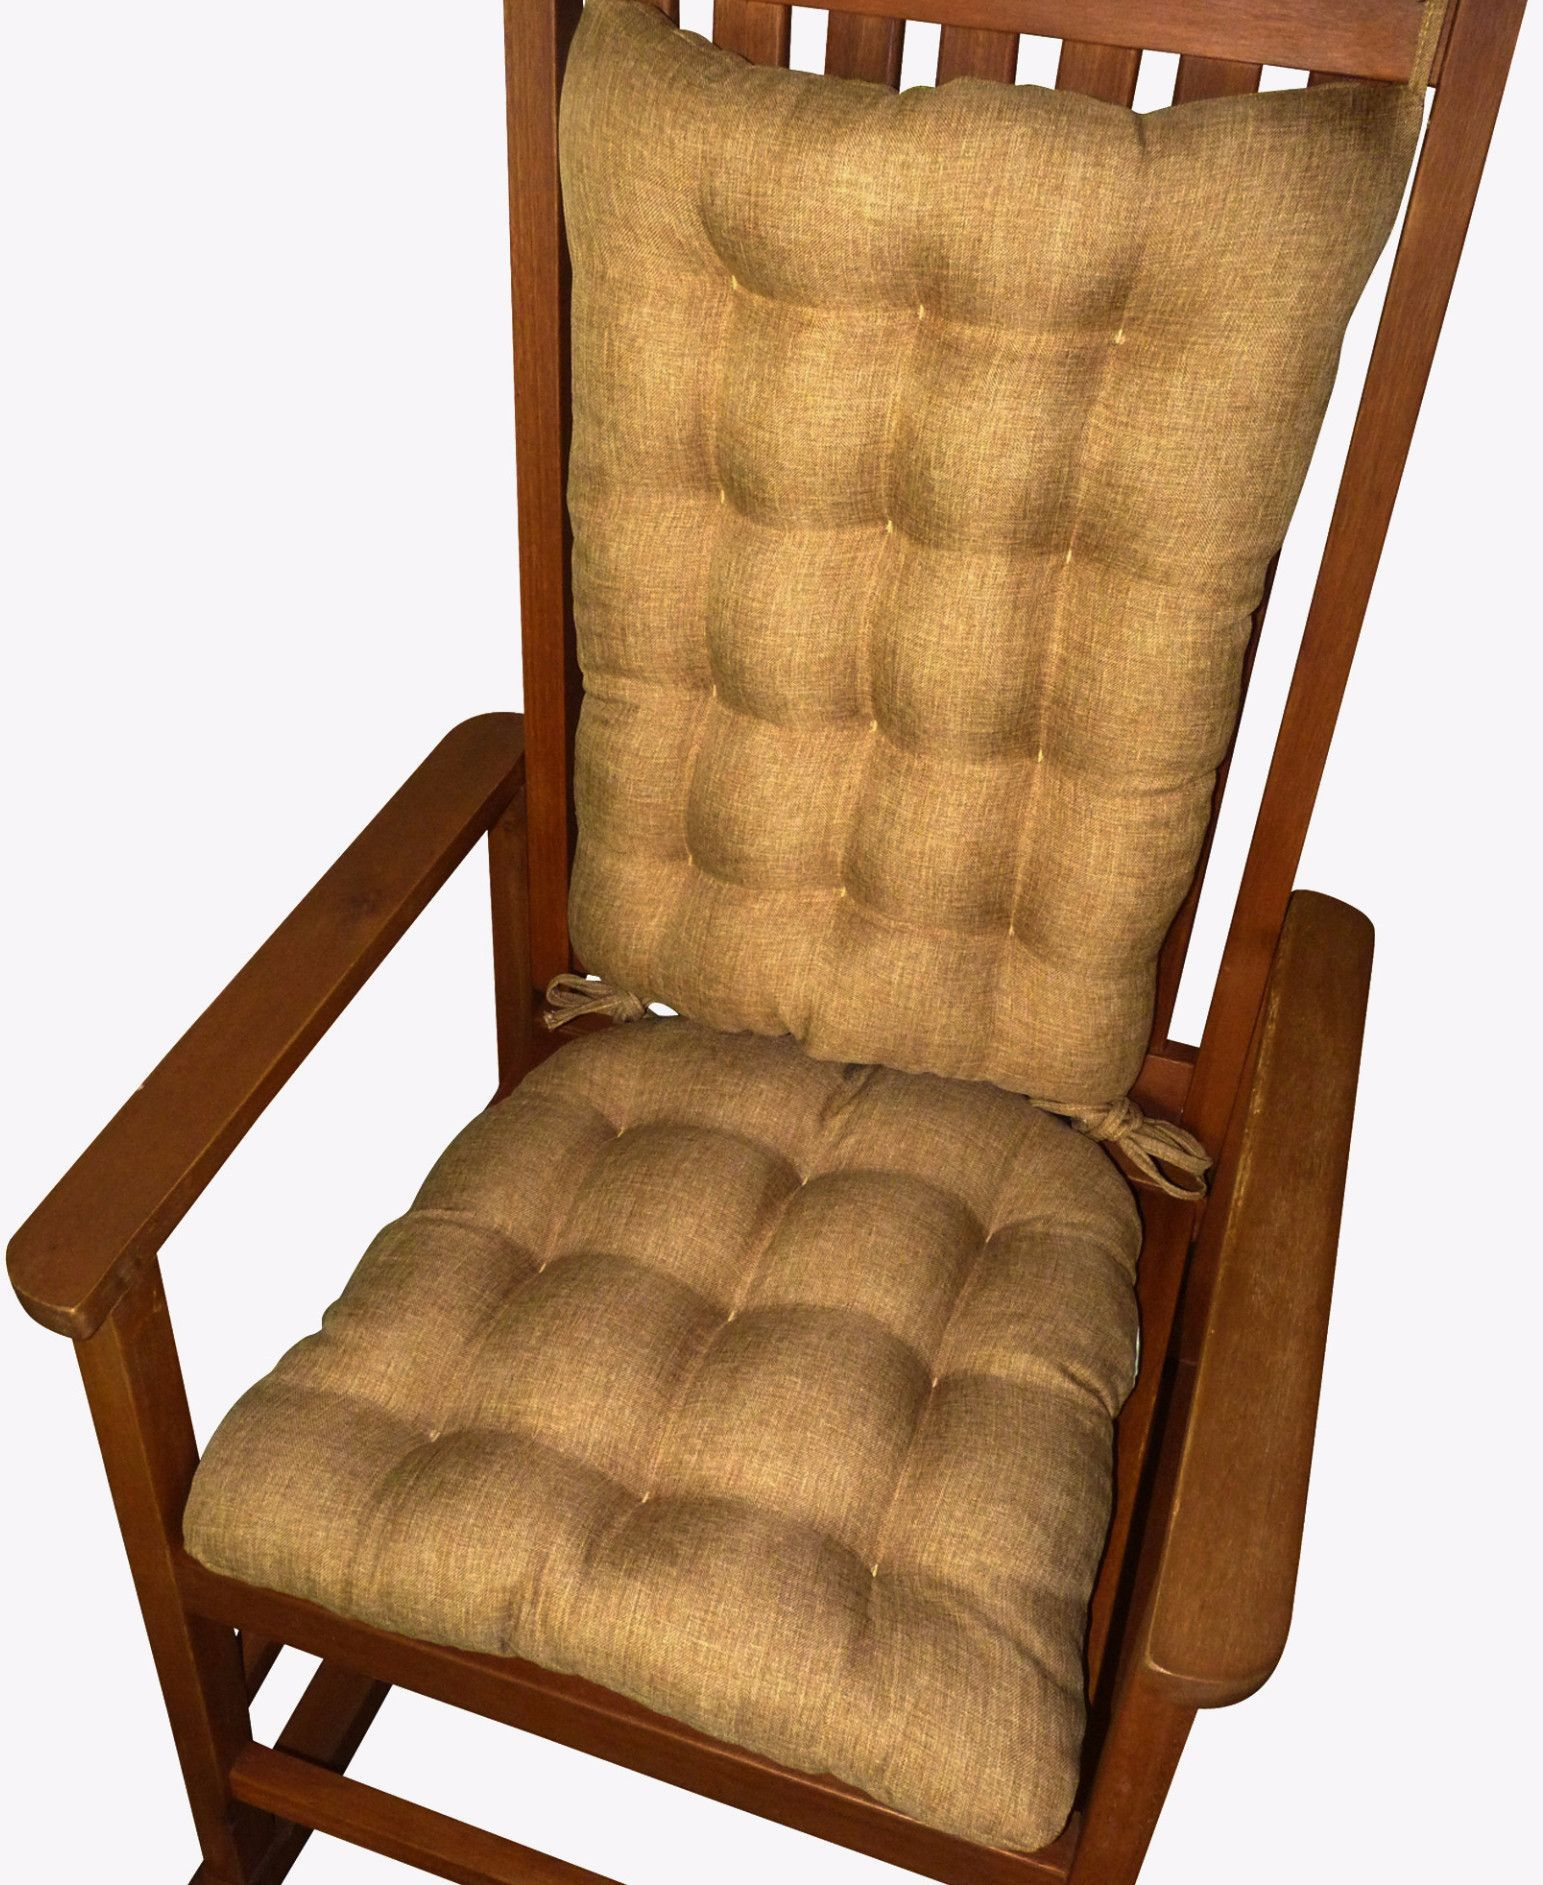 Hayden Honey Rocking Chair Cushions are made in a subtly variegated woven fabric in warm neutral shades of rust red, henna brown and golden wheat that will compliment many decor styles and color themes. #honey #copper